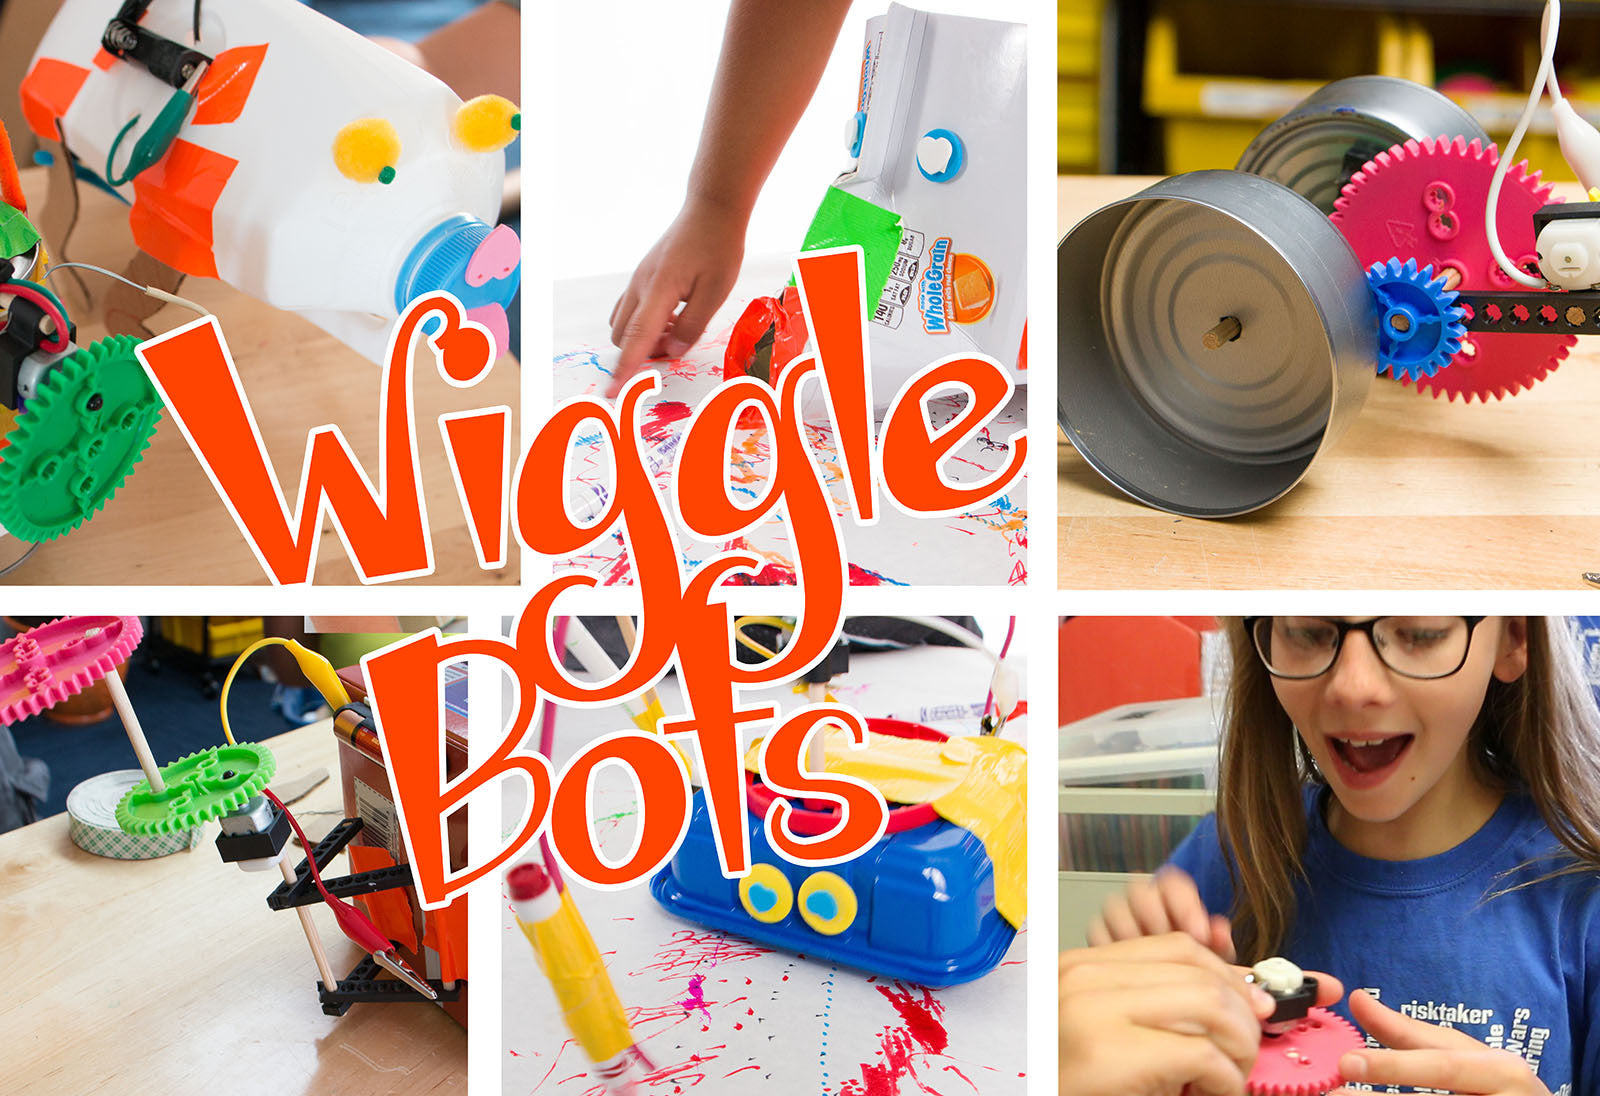 Wiggle-Bots Activity Documents